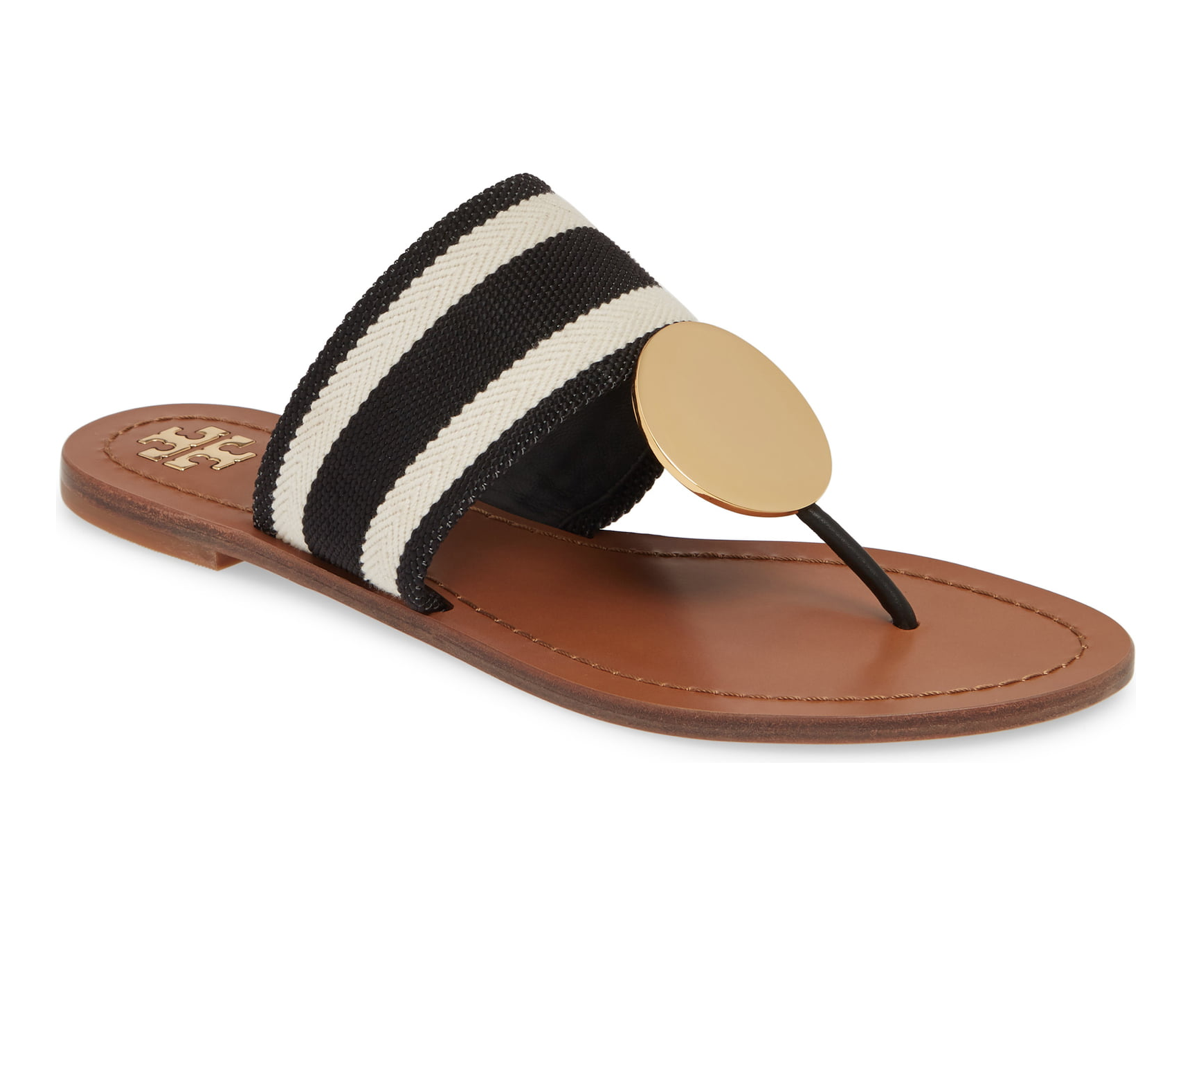 Tory Burch Patos Disk Web Strap Leather Sandals